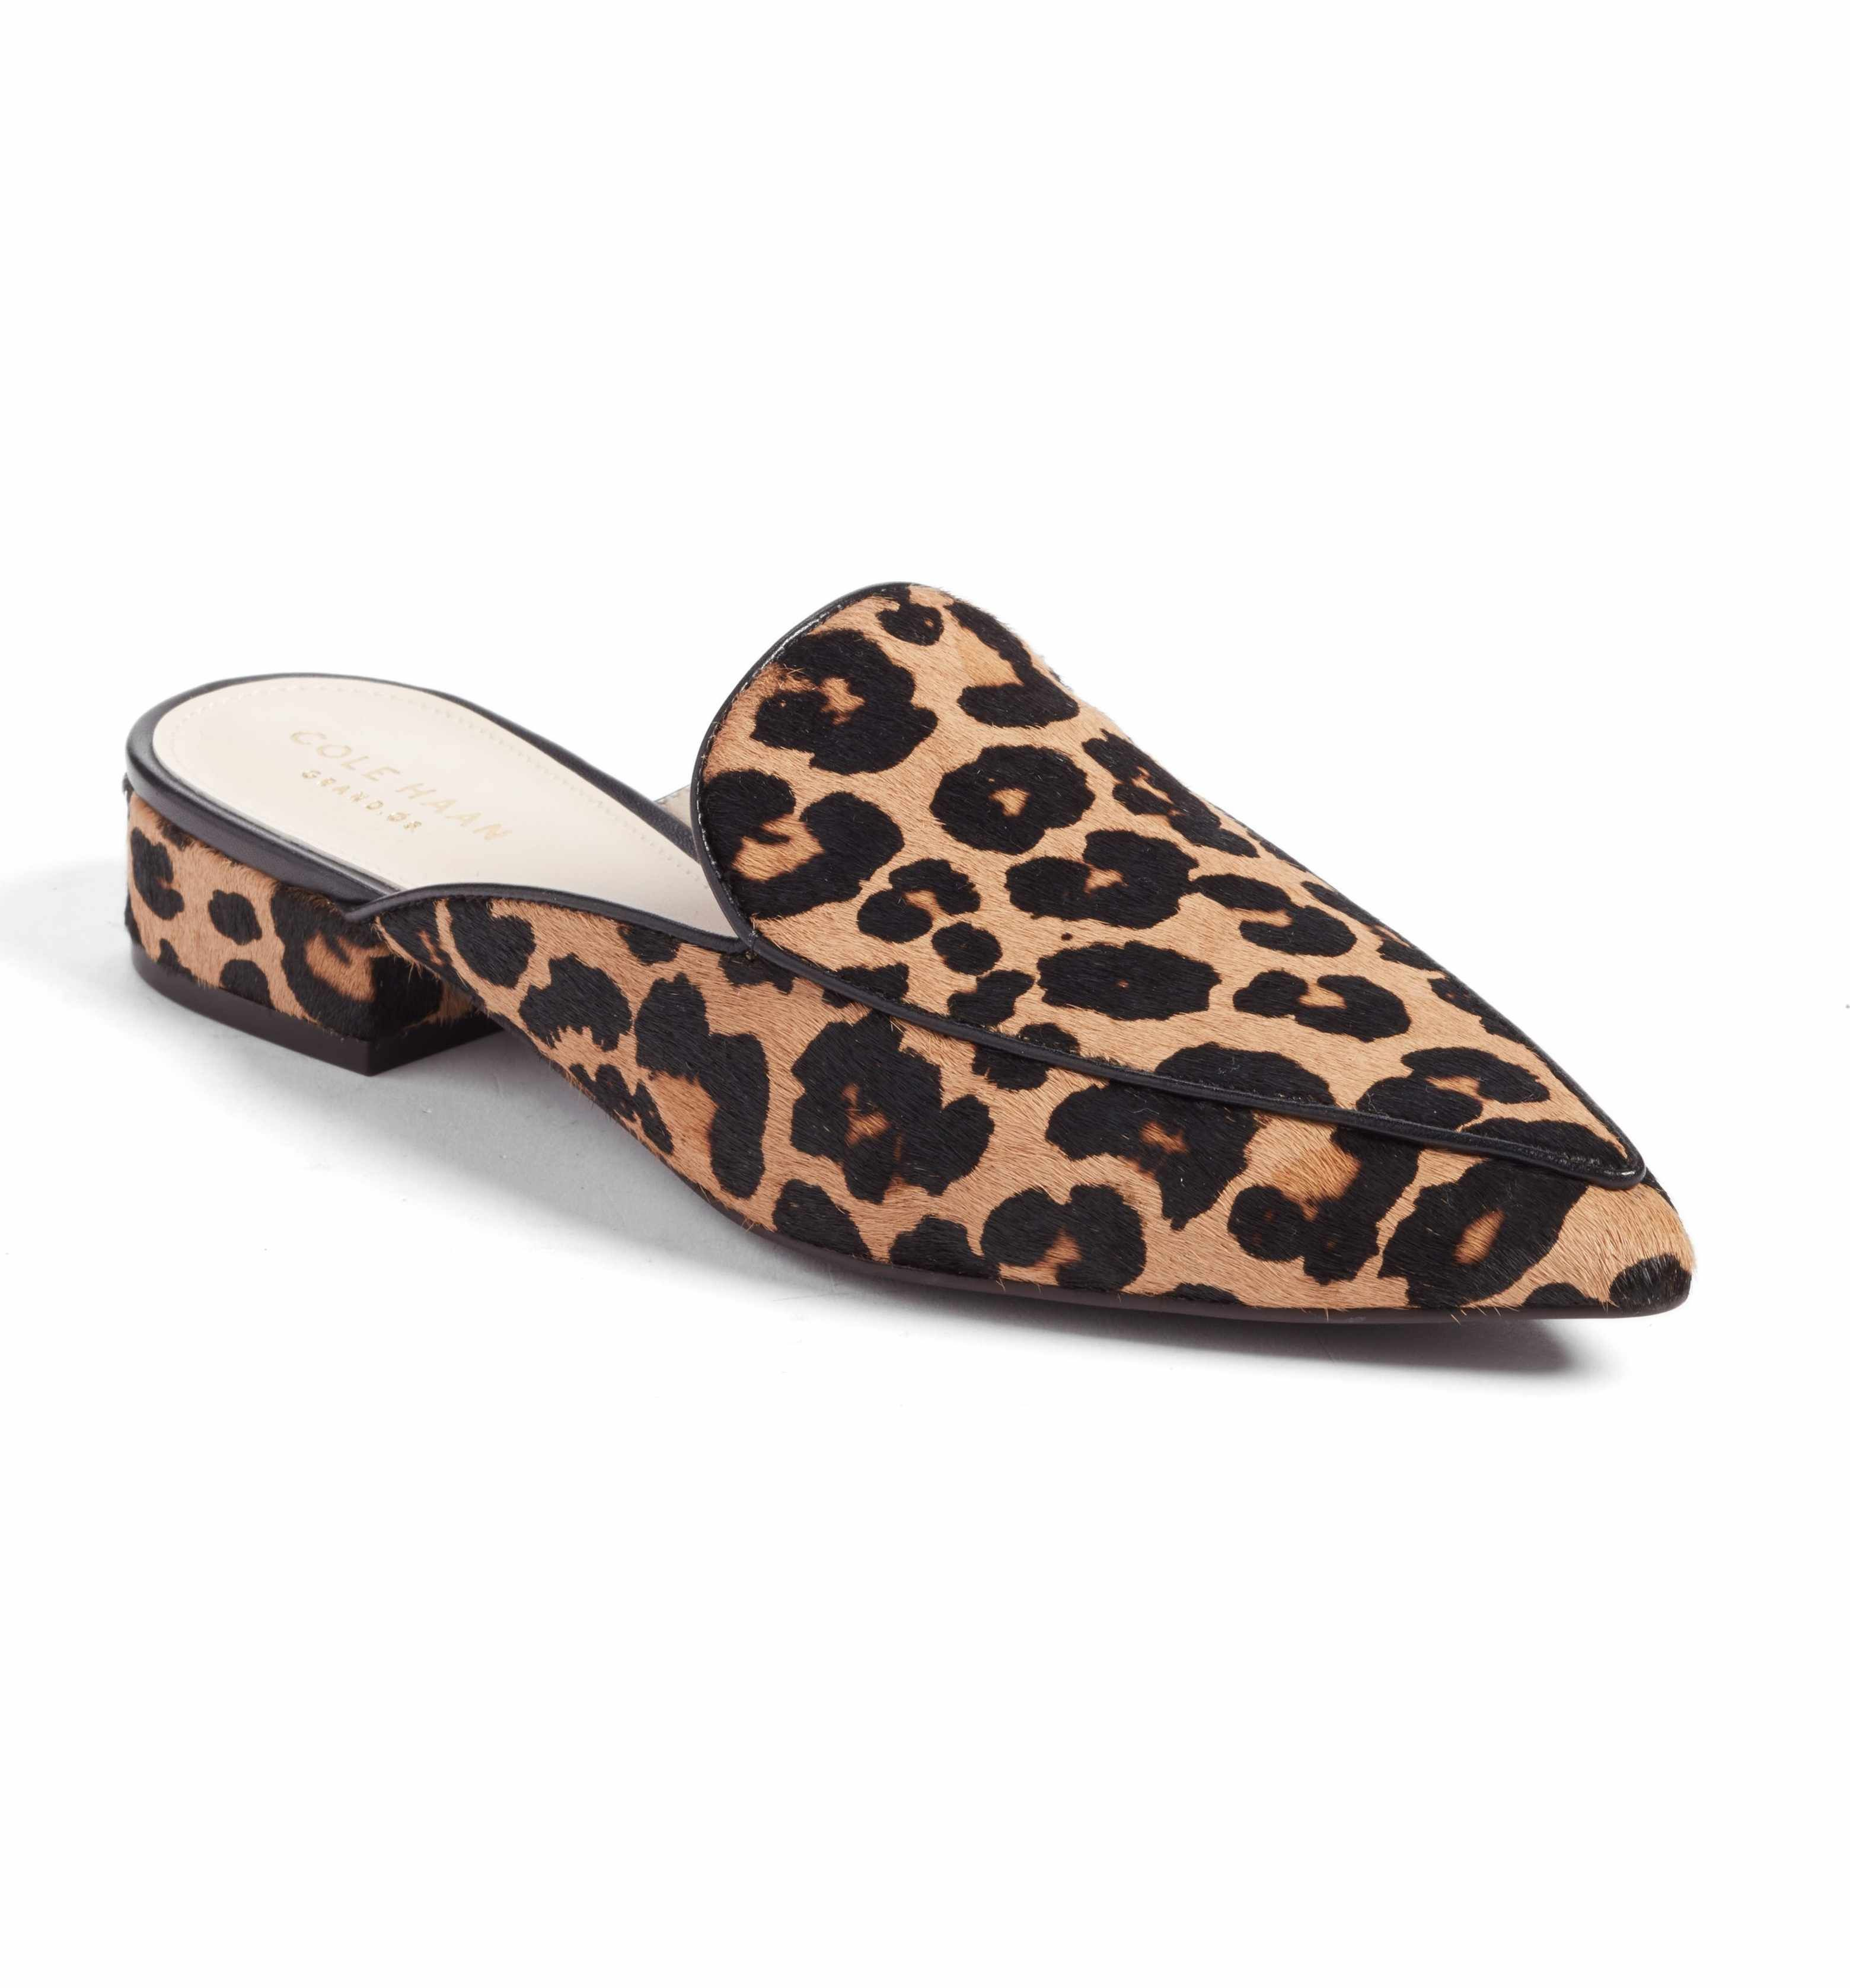 53df45080fe Main Image - Cole Haan Piper Loafer Mule (Women)